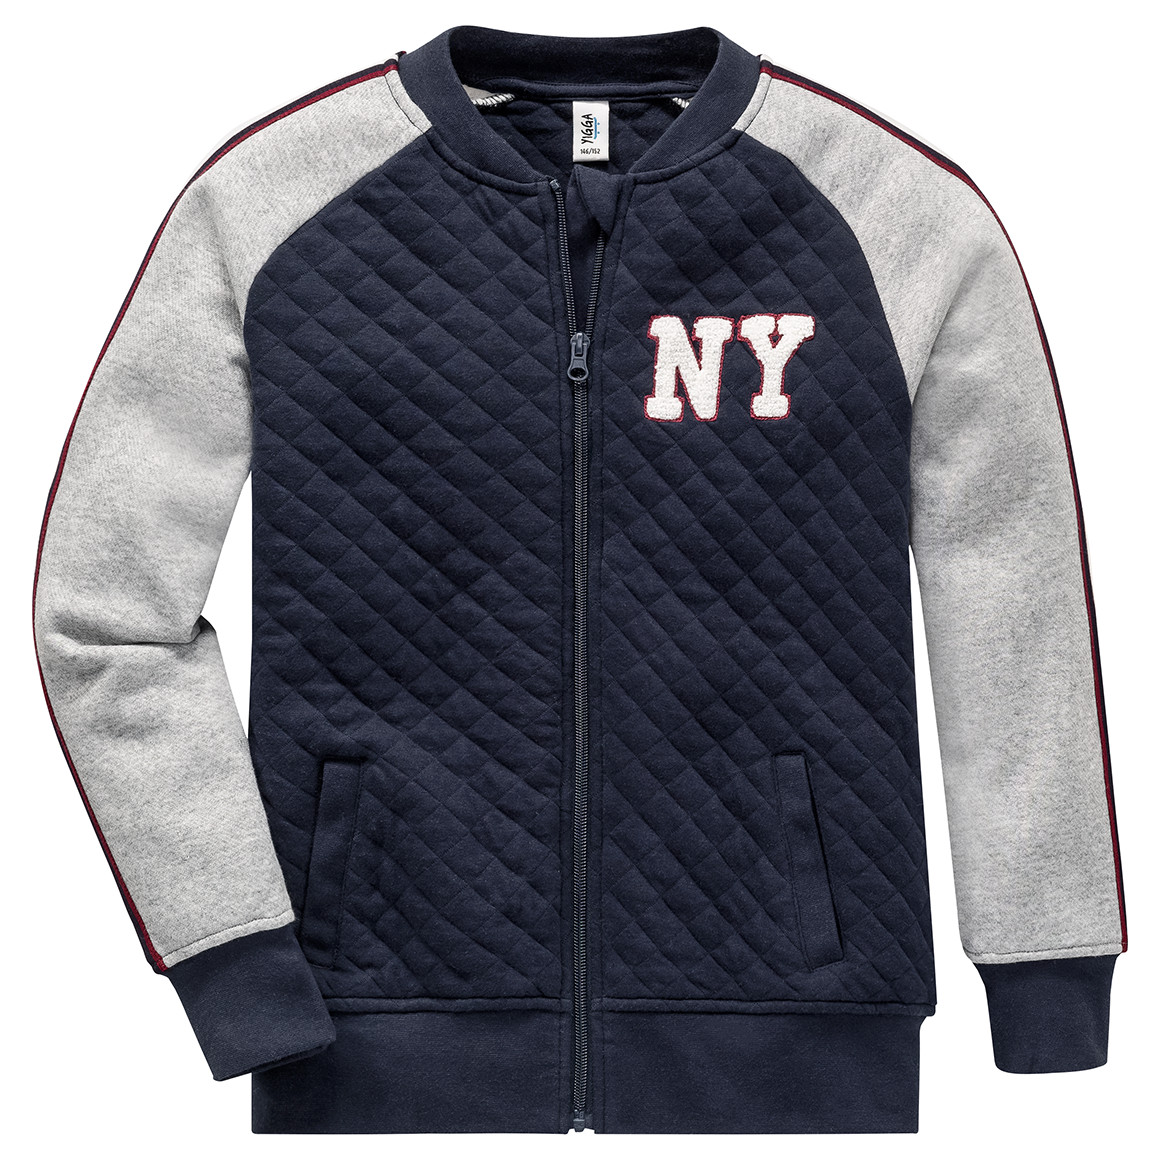 Boysjacken - Jungen Sweatjacke mit Steppmuster - Onlineshop Ernstings family